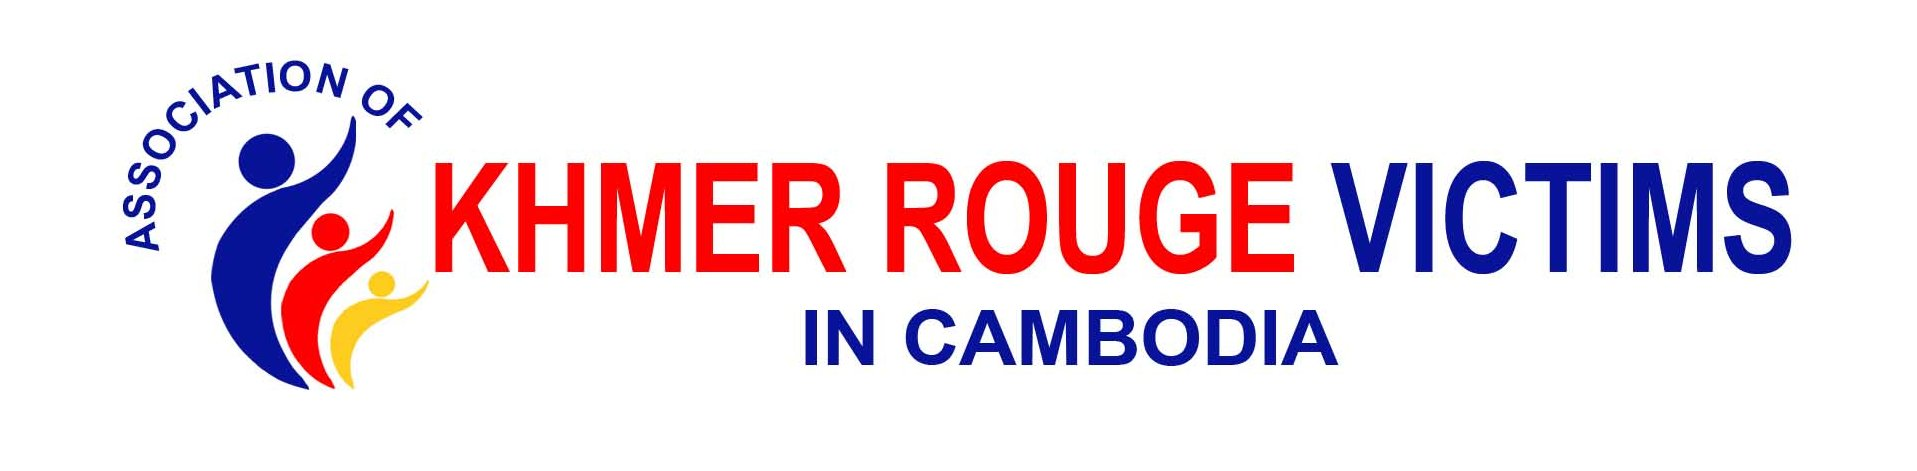 Association of Khmer Rouge Victims in Cambodia (AKRVC)